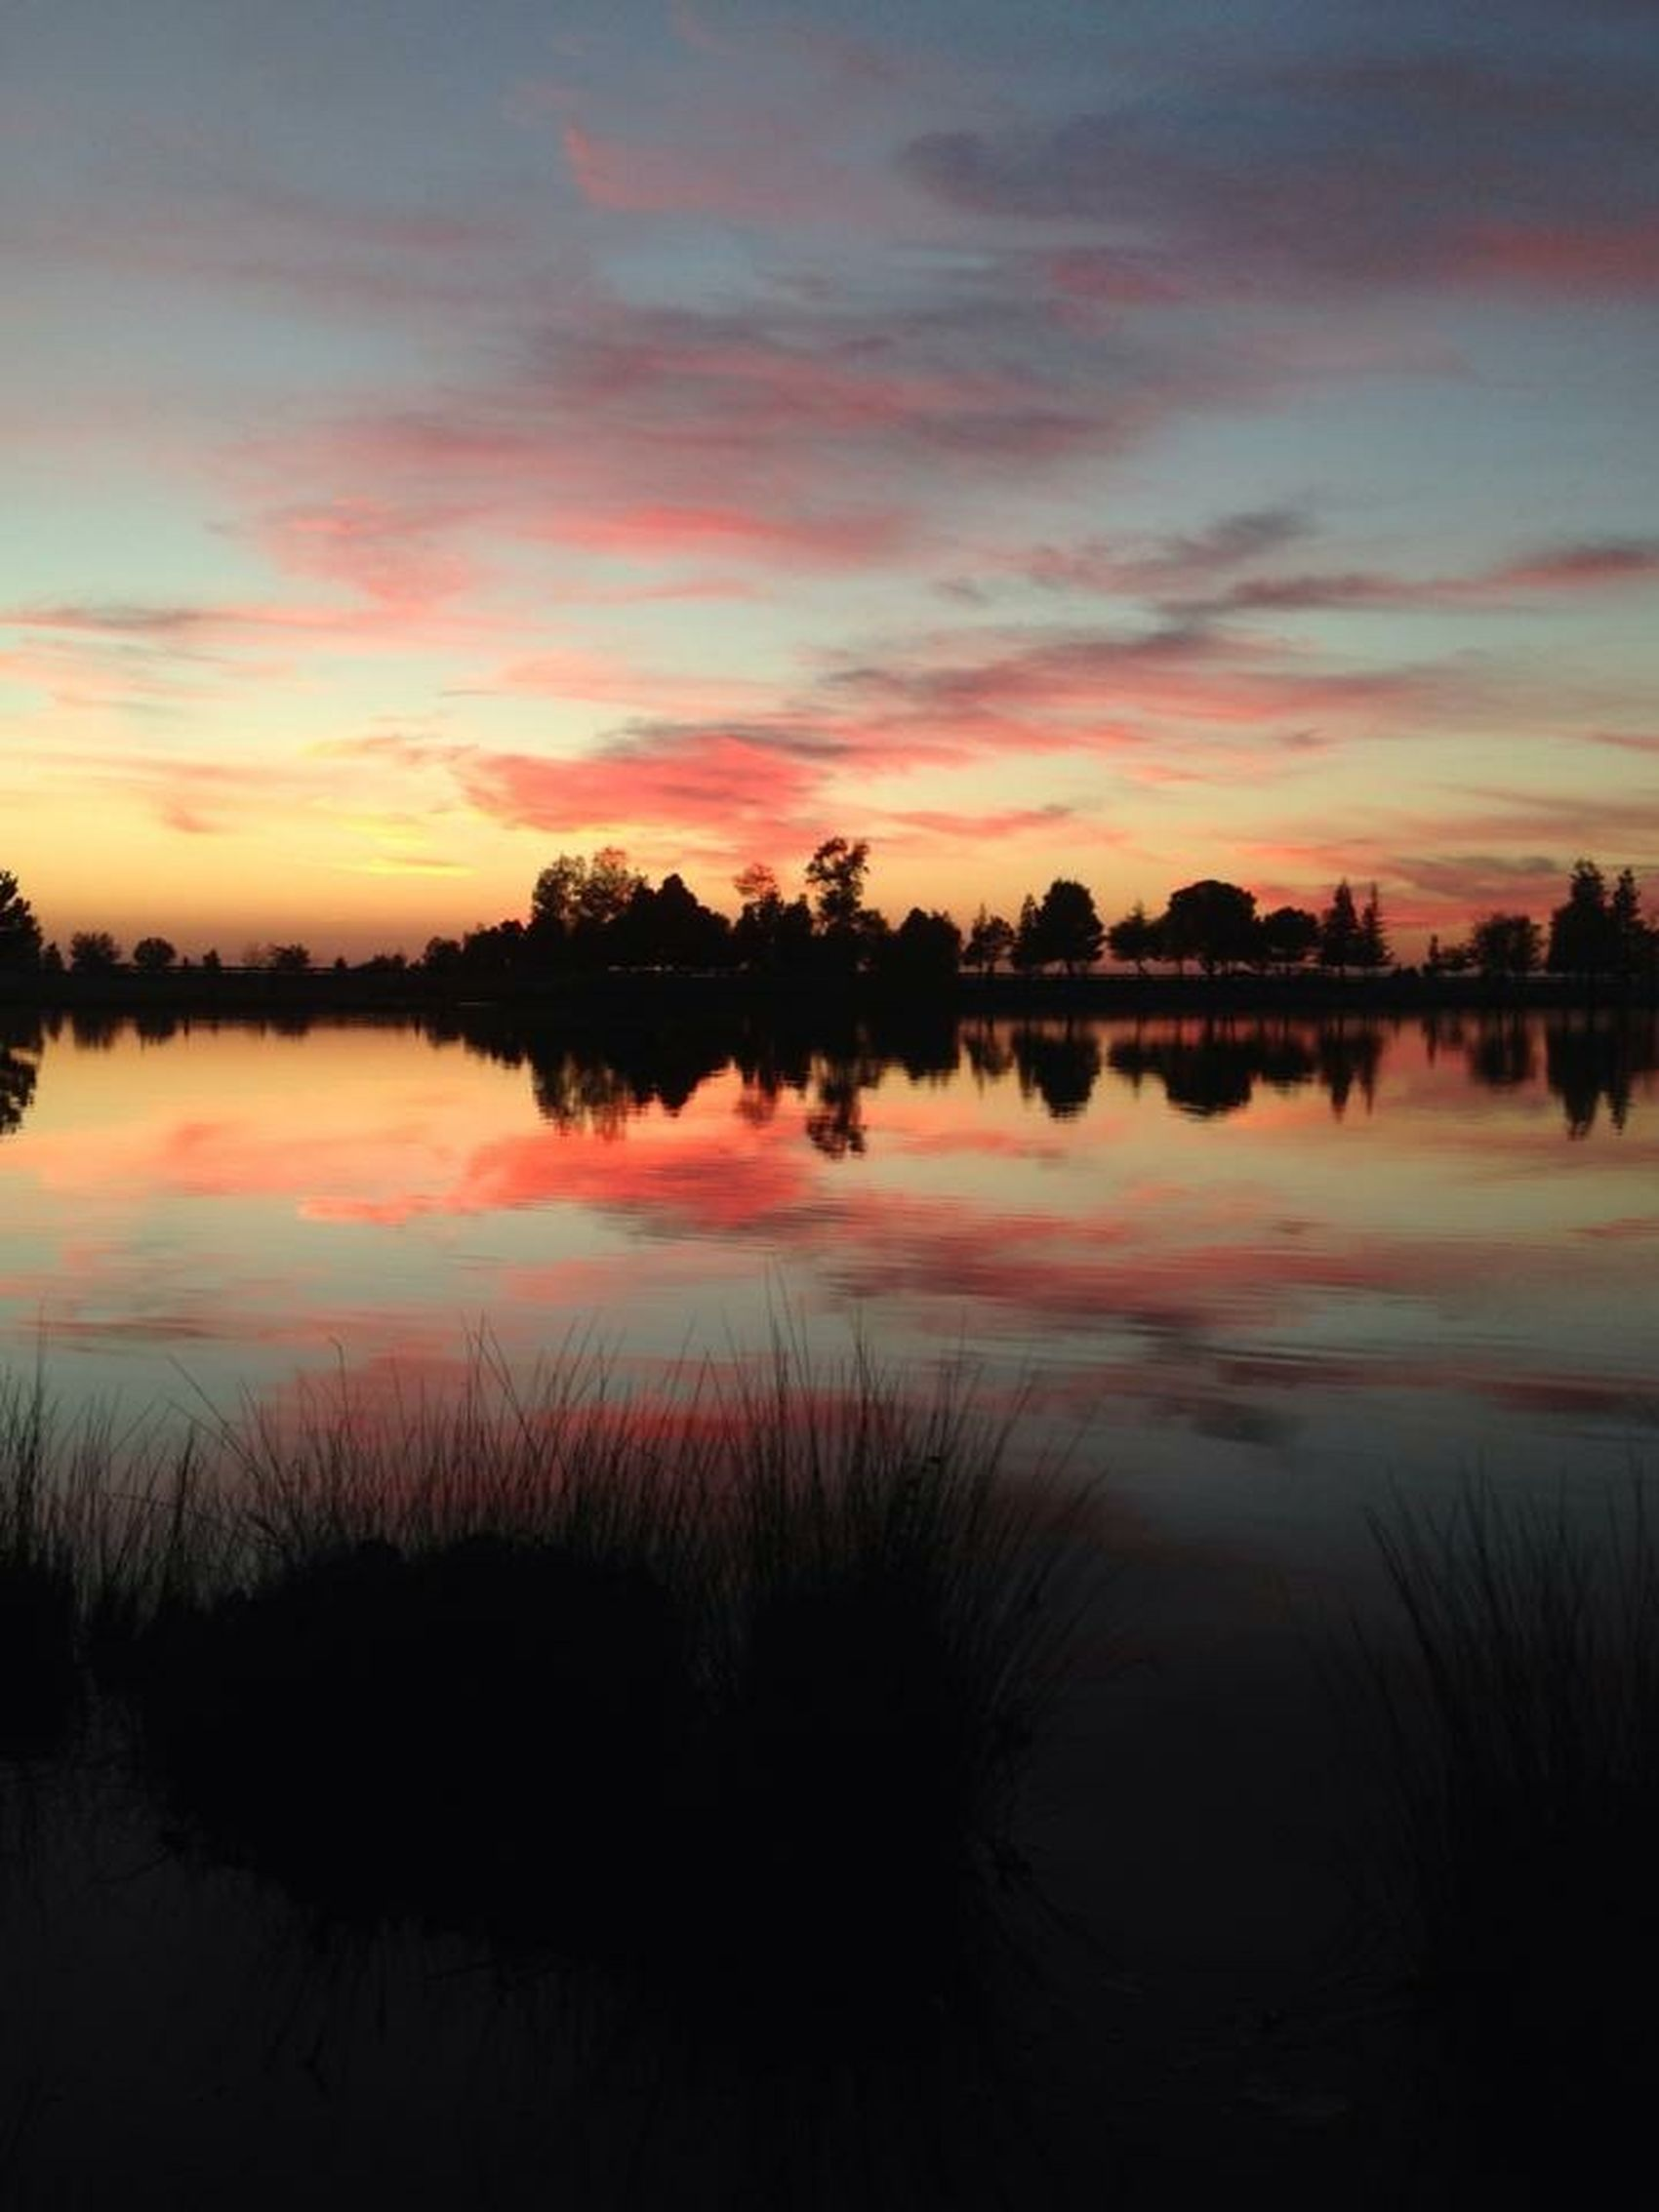 Clouds And Sky Cloudscape Majestic Nature Awesome Sunset Reflections Water Reflection Golden Sunset Water Reflections Sunset Silhouettes Sunset #sun #clouds #skylovers #sky #nature #beautifulinnature #naturalbeauty #photography #landscape Rancho Seco Park, CA